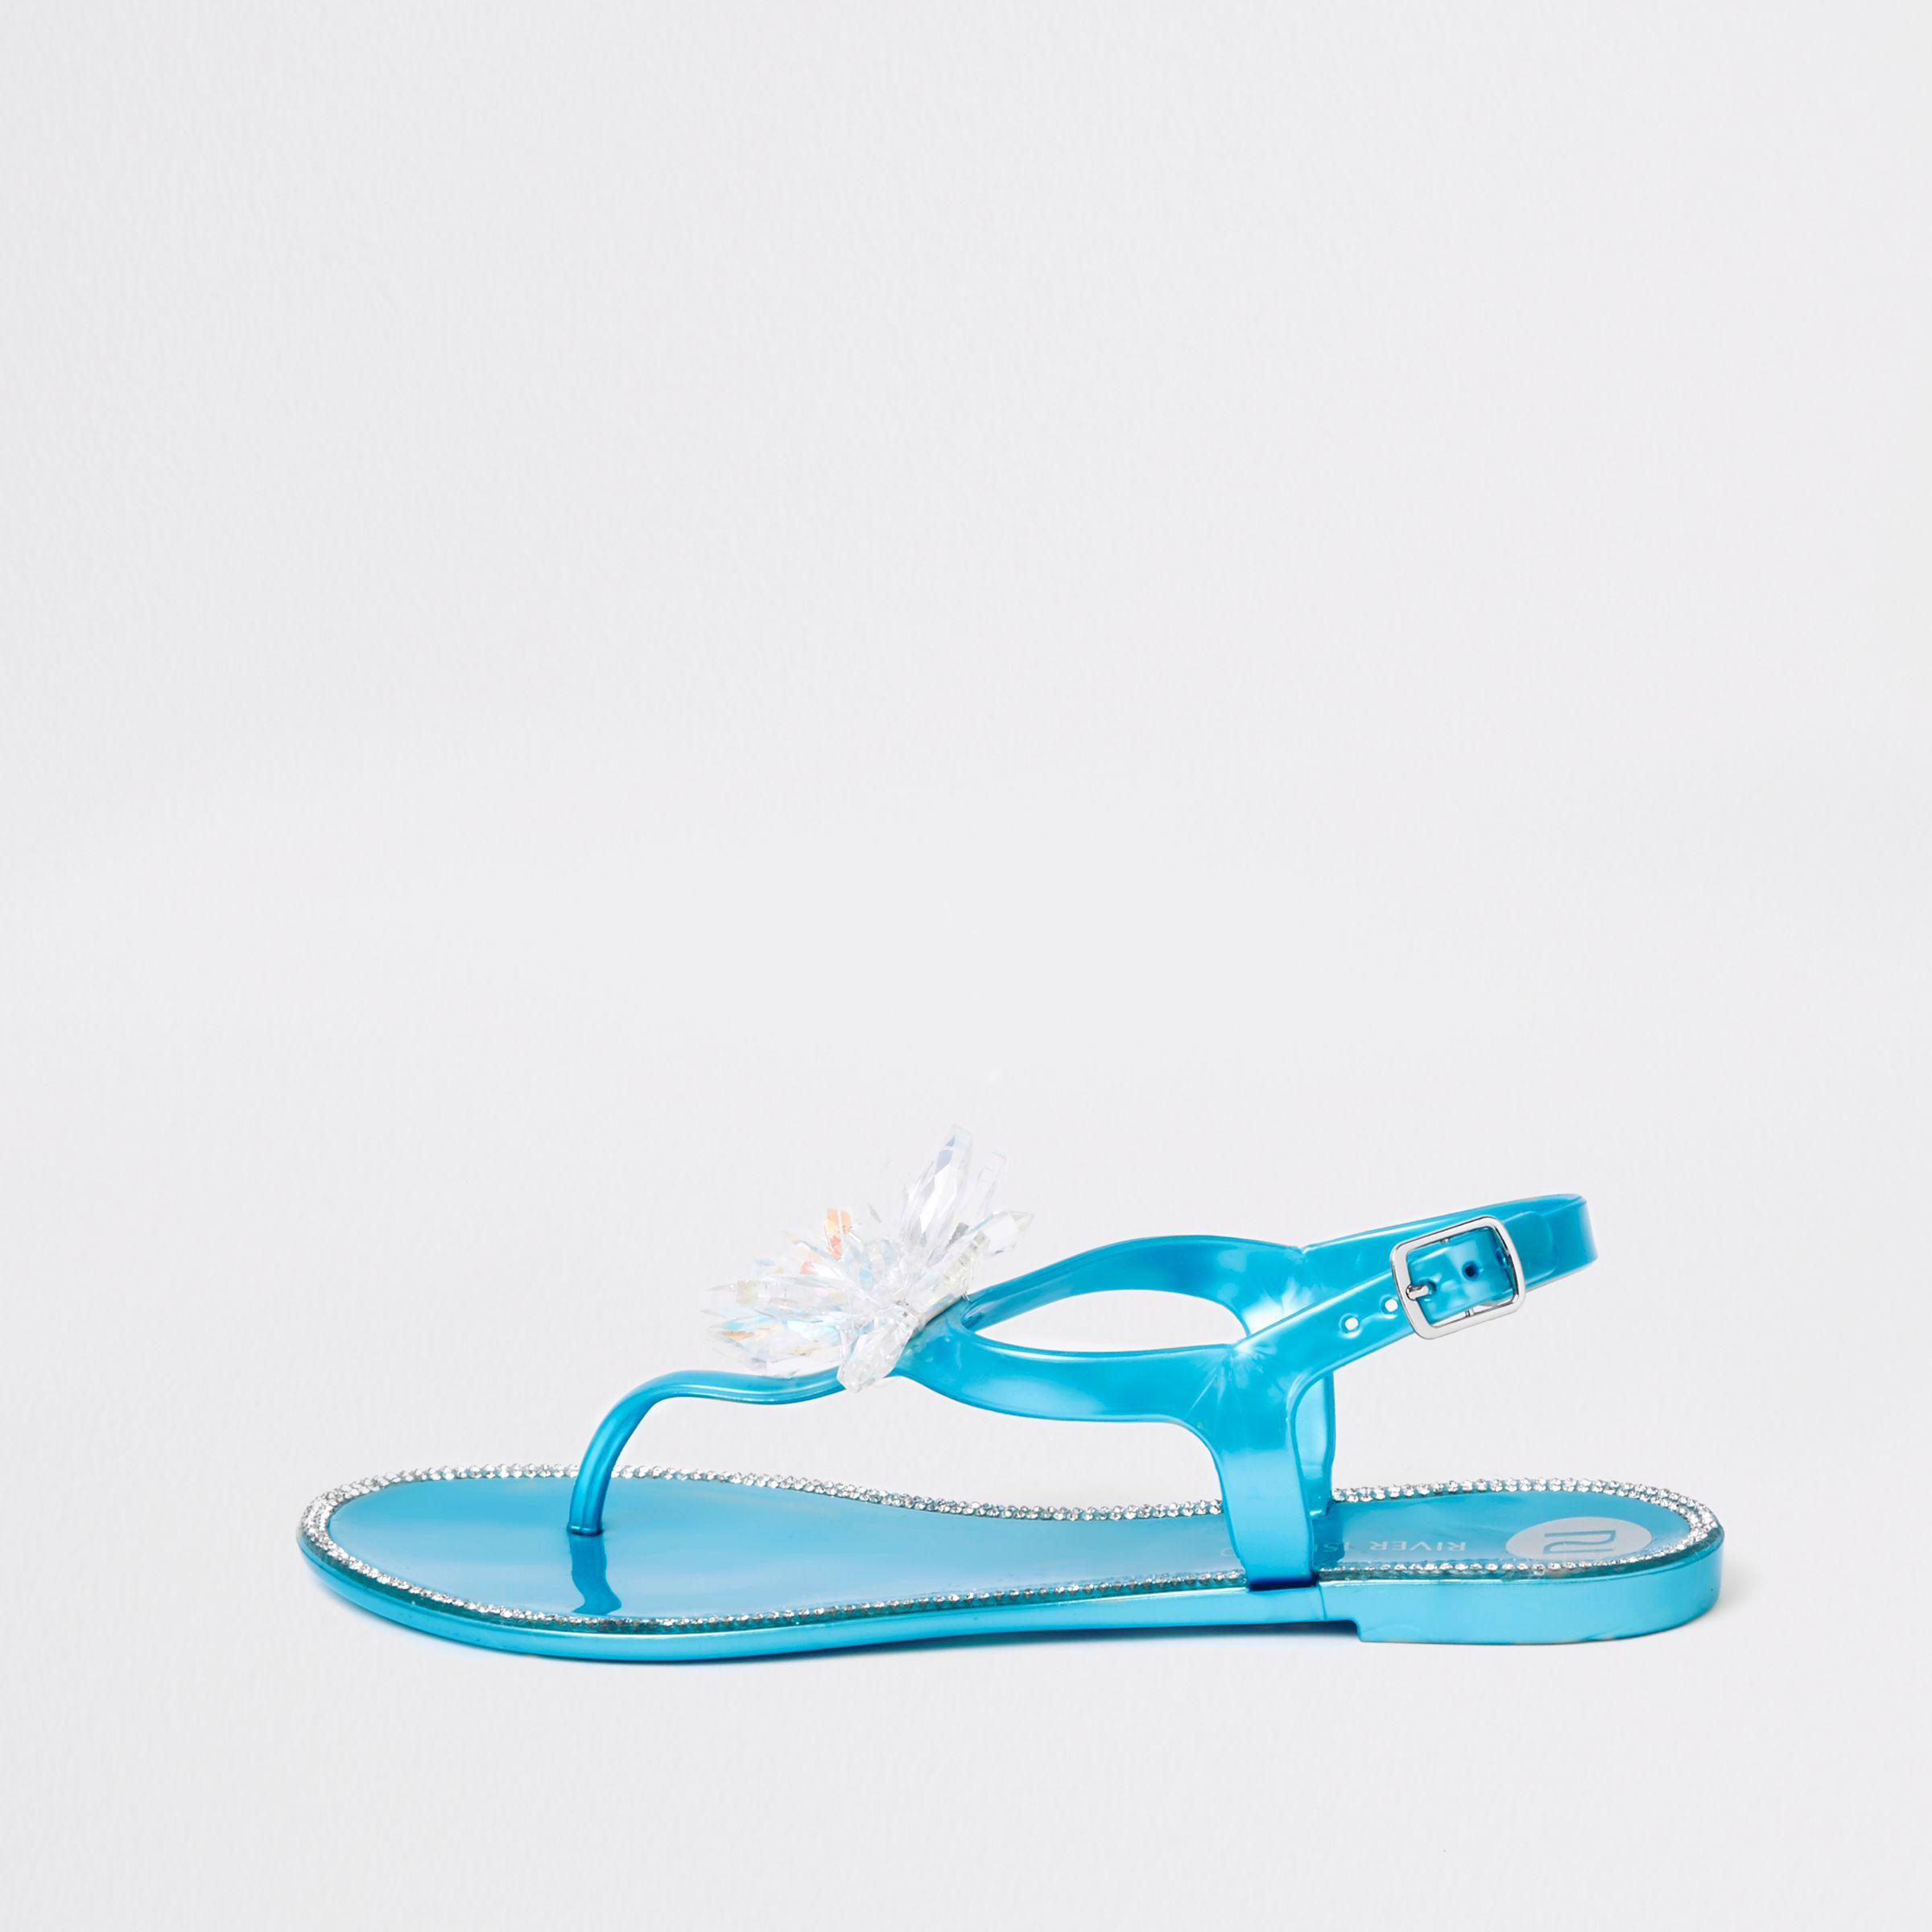 f0bc48eaf885 Lyst - River Island Blue Jewel Flower Jelly Sandals in Blue